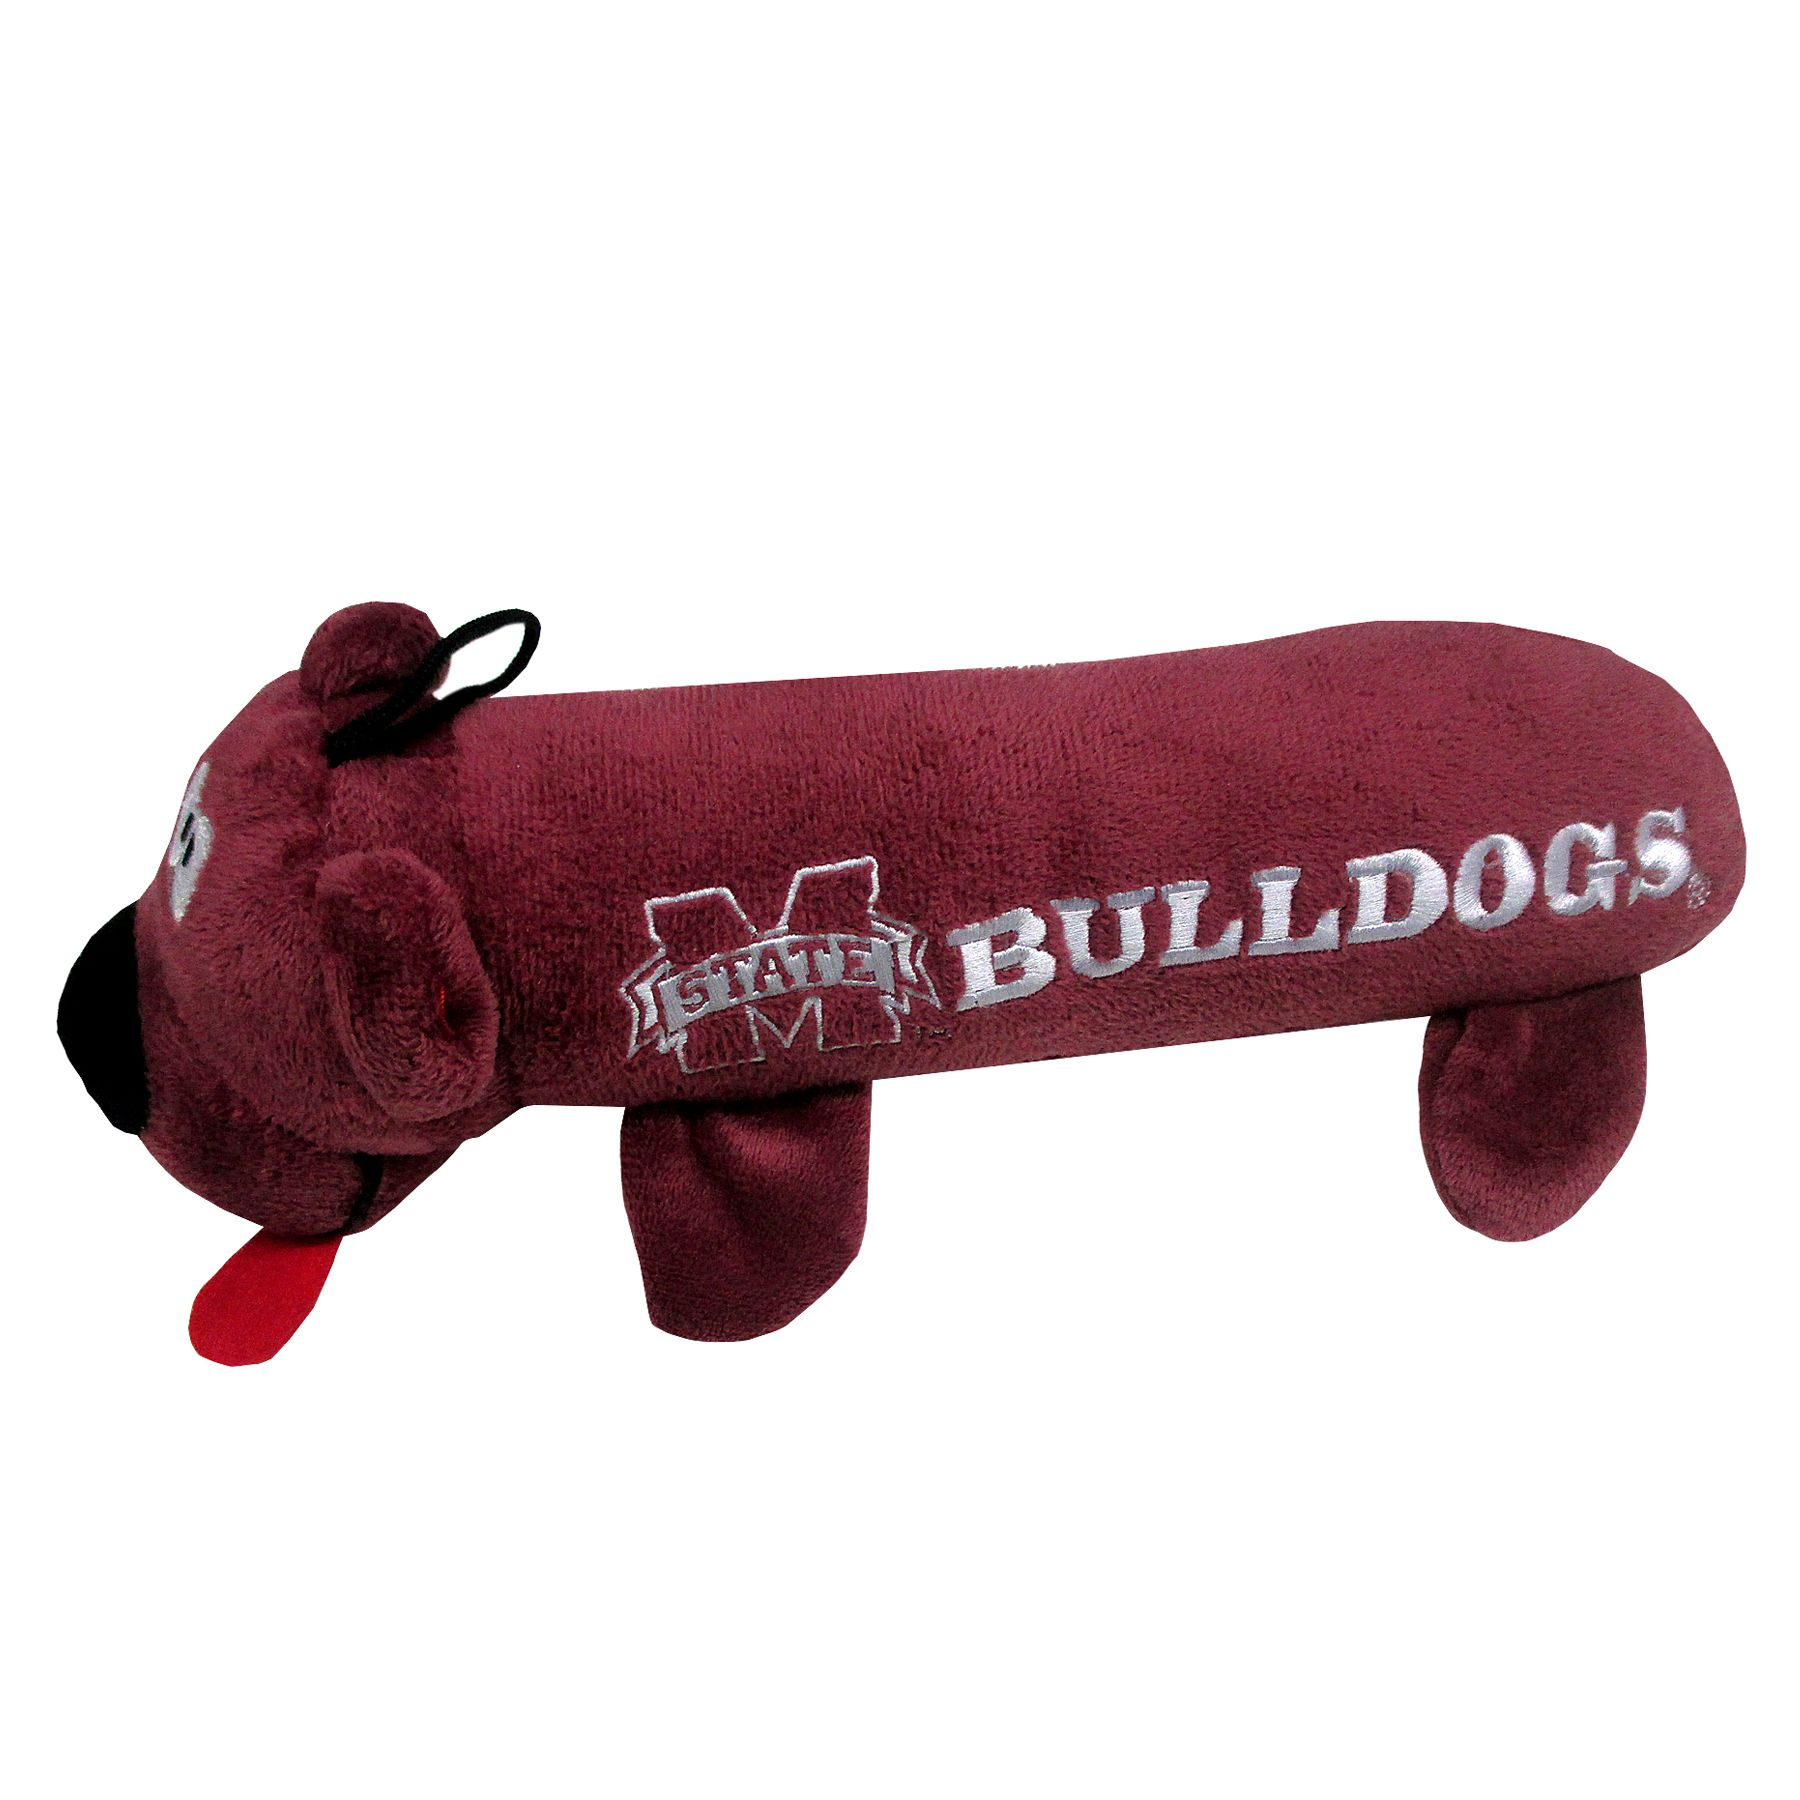 Mississippi State University Bulldogs Ncaa Tube Dog Toy, Pets First 5243451